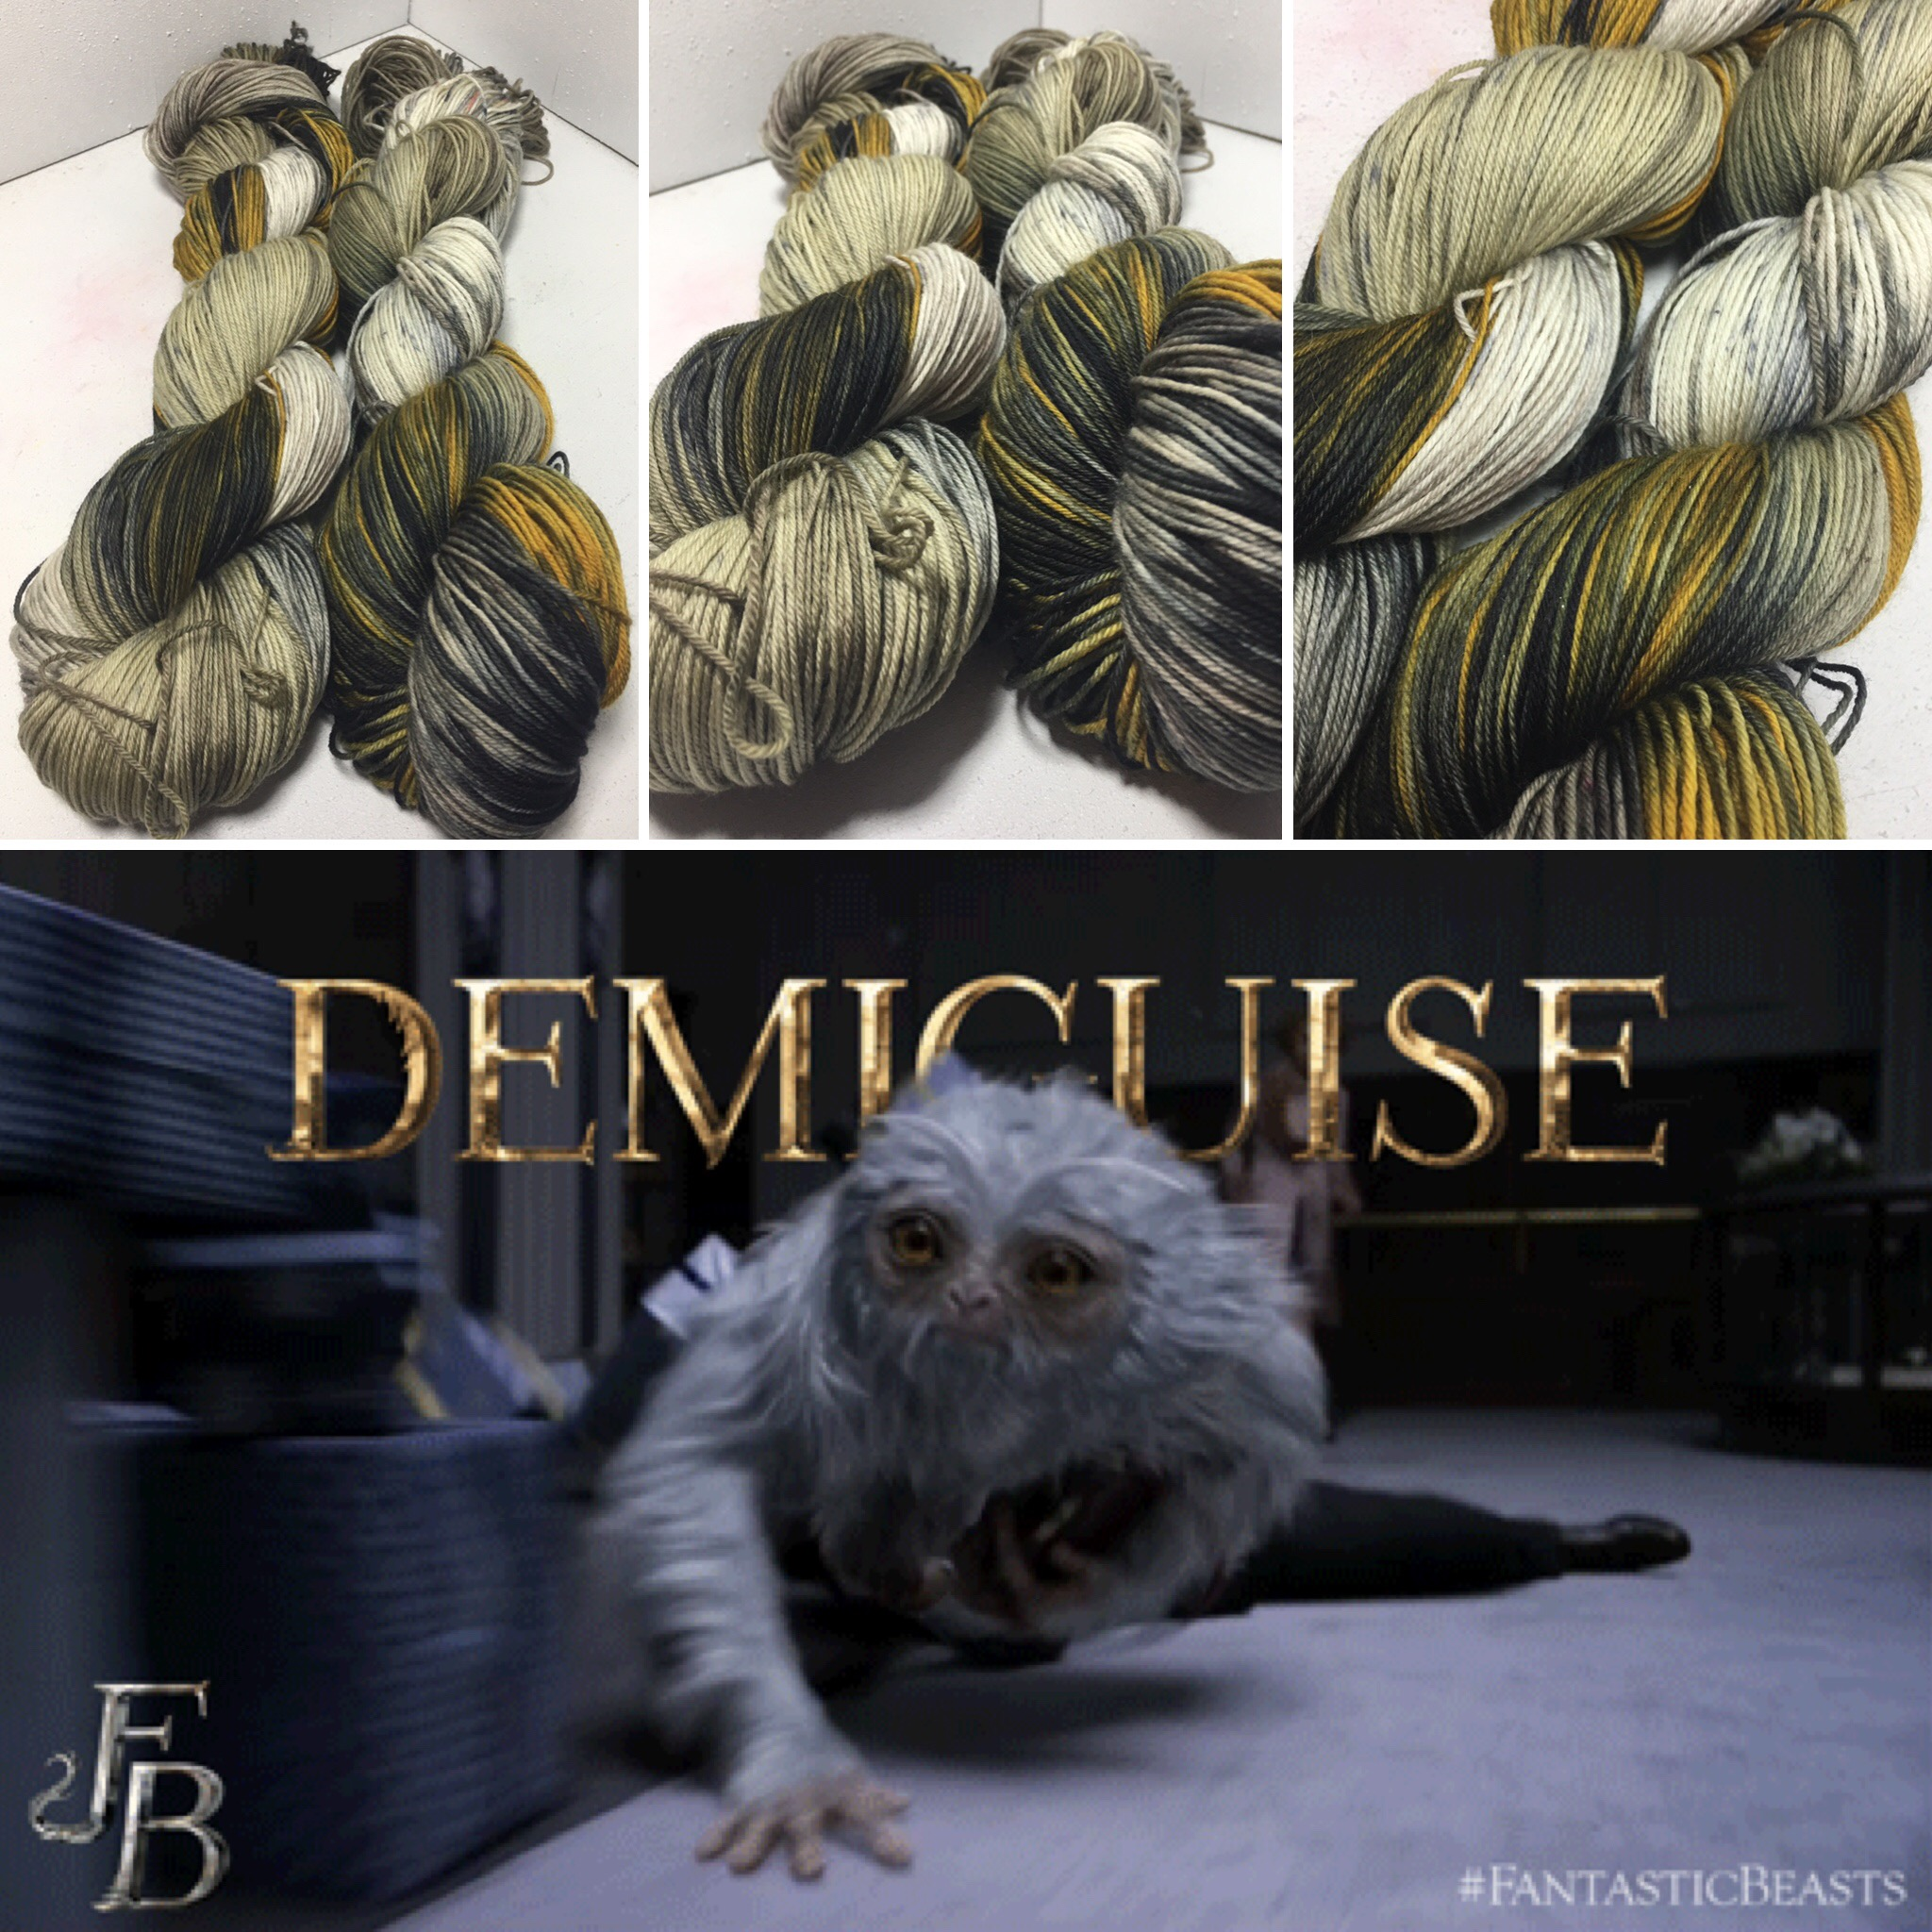 https://www.etsy.com/listing/494861578/made-to-order-demiguise-100-superwash